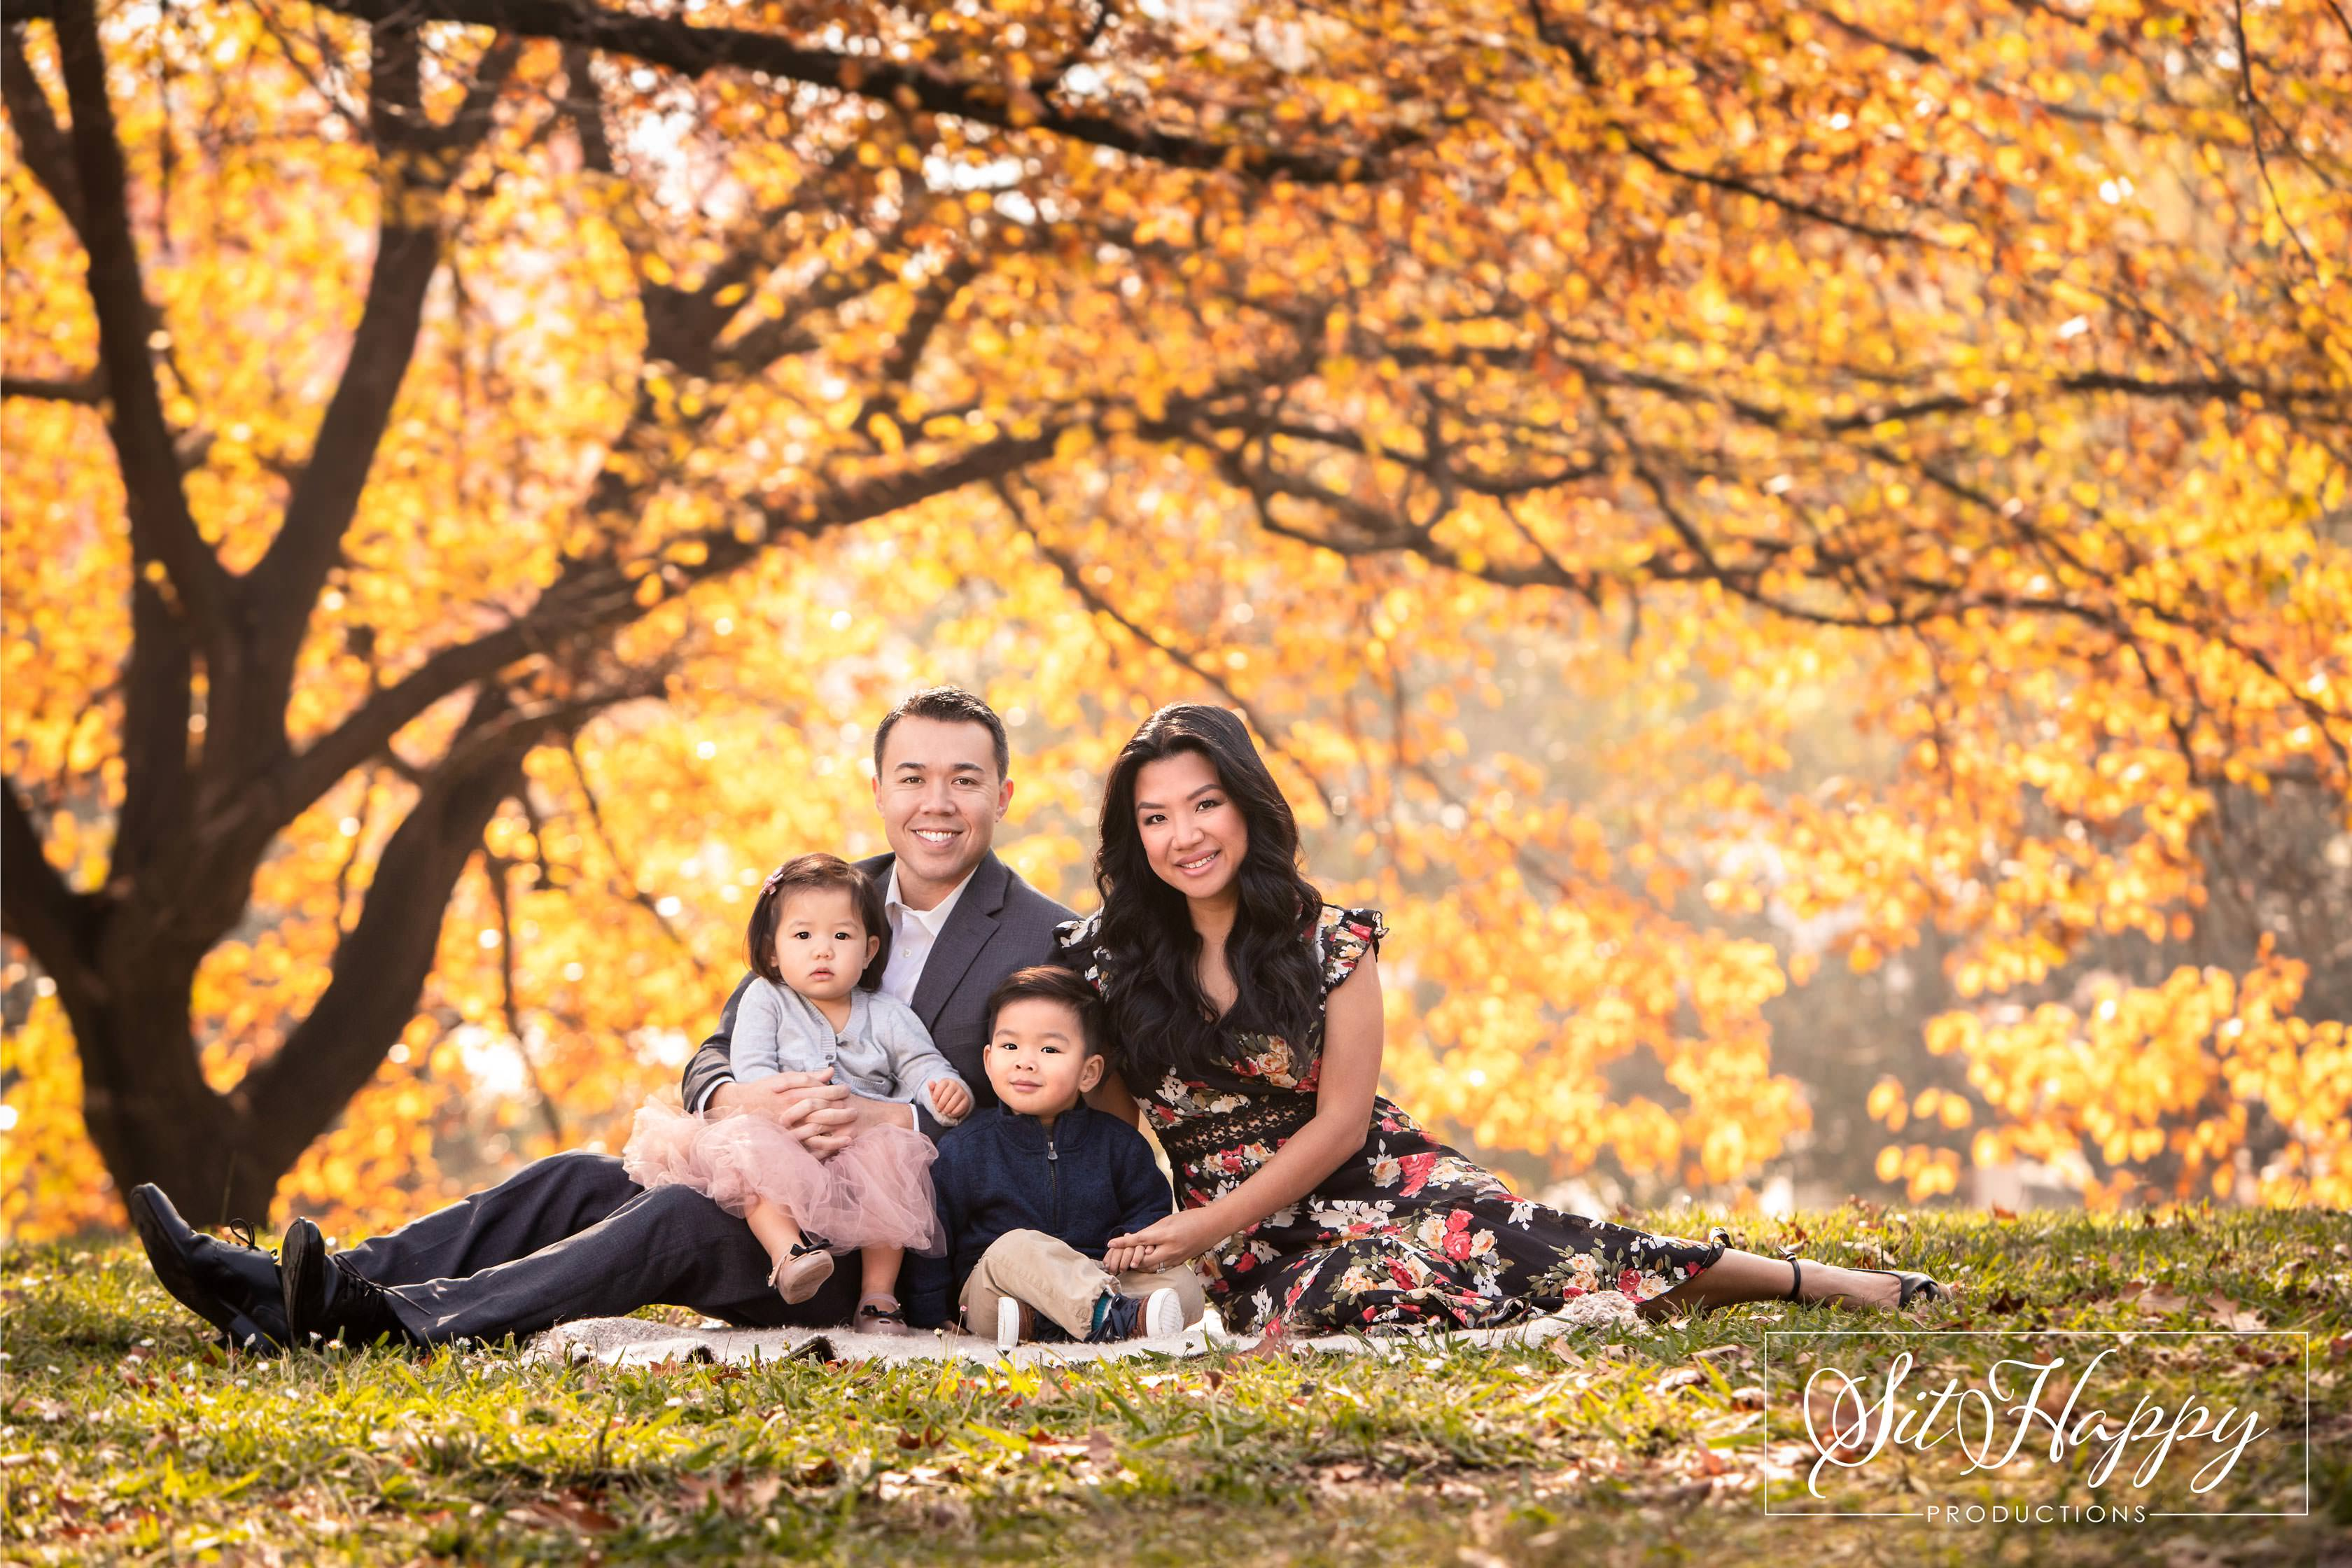 Best-Outdoor-Family-Photo-Session-Locations-in-San-Jose-CA-Vasona-Pepper-Tree-Family-Photography-SitHappyProductions